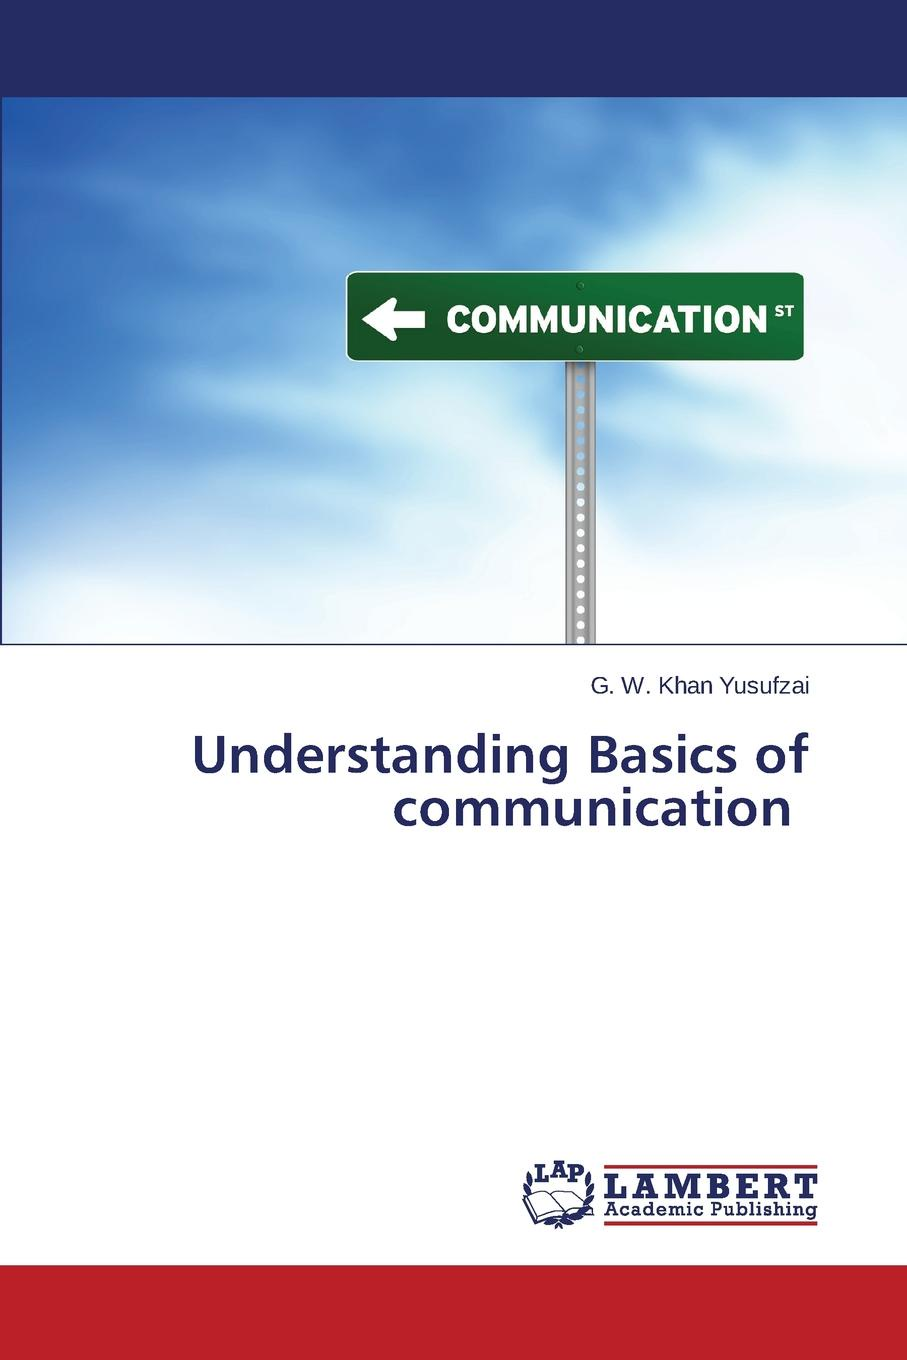 Yusufzai G. W. Khan Understanding Basics of communication seeger matthew w theorizing crisis communication